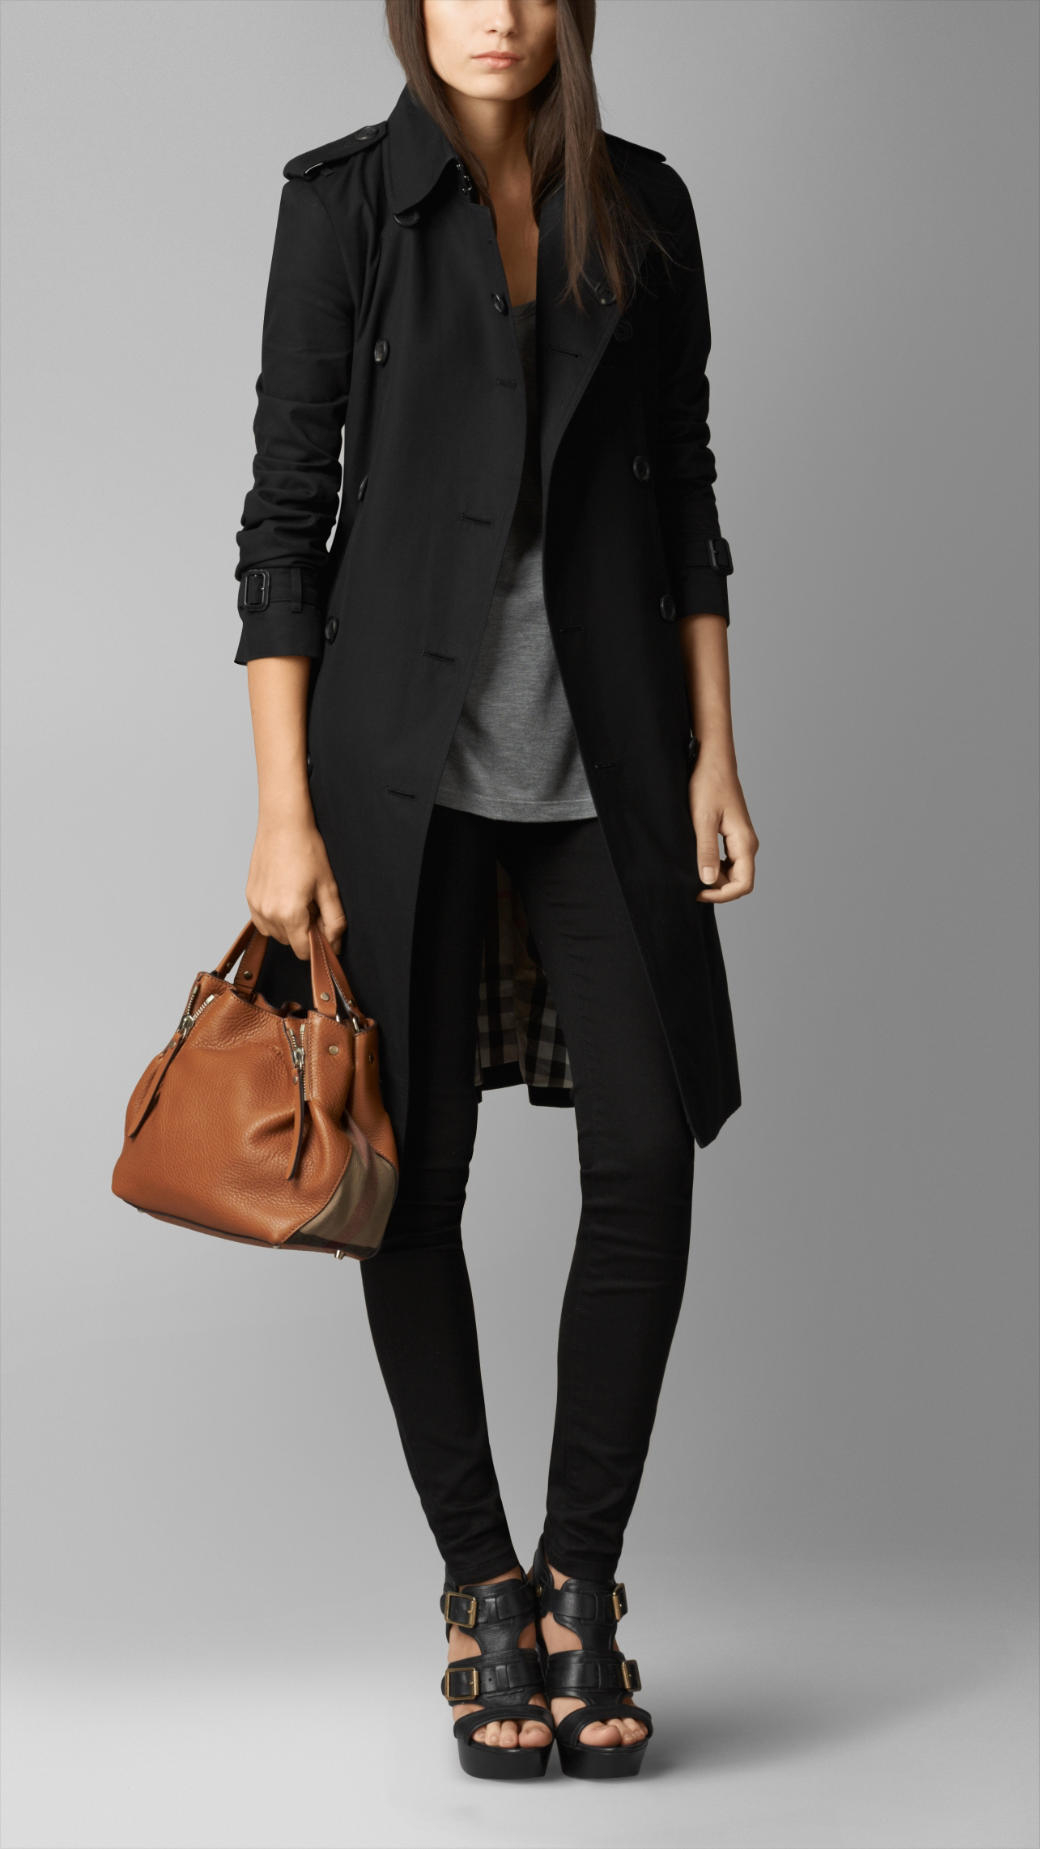 Image Result For Womens Leather Tote Bags